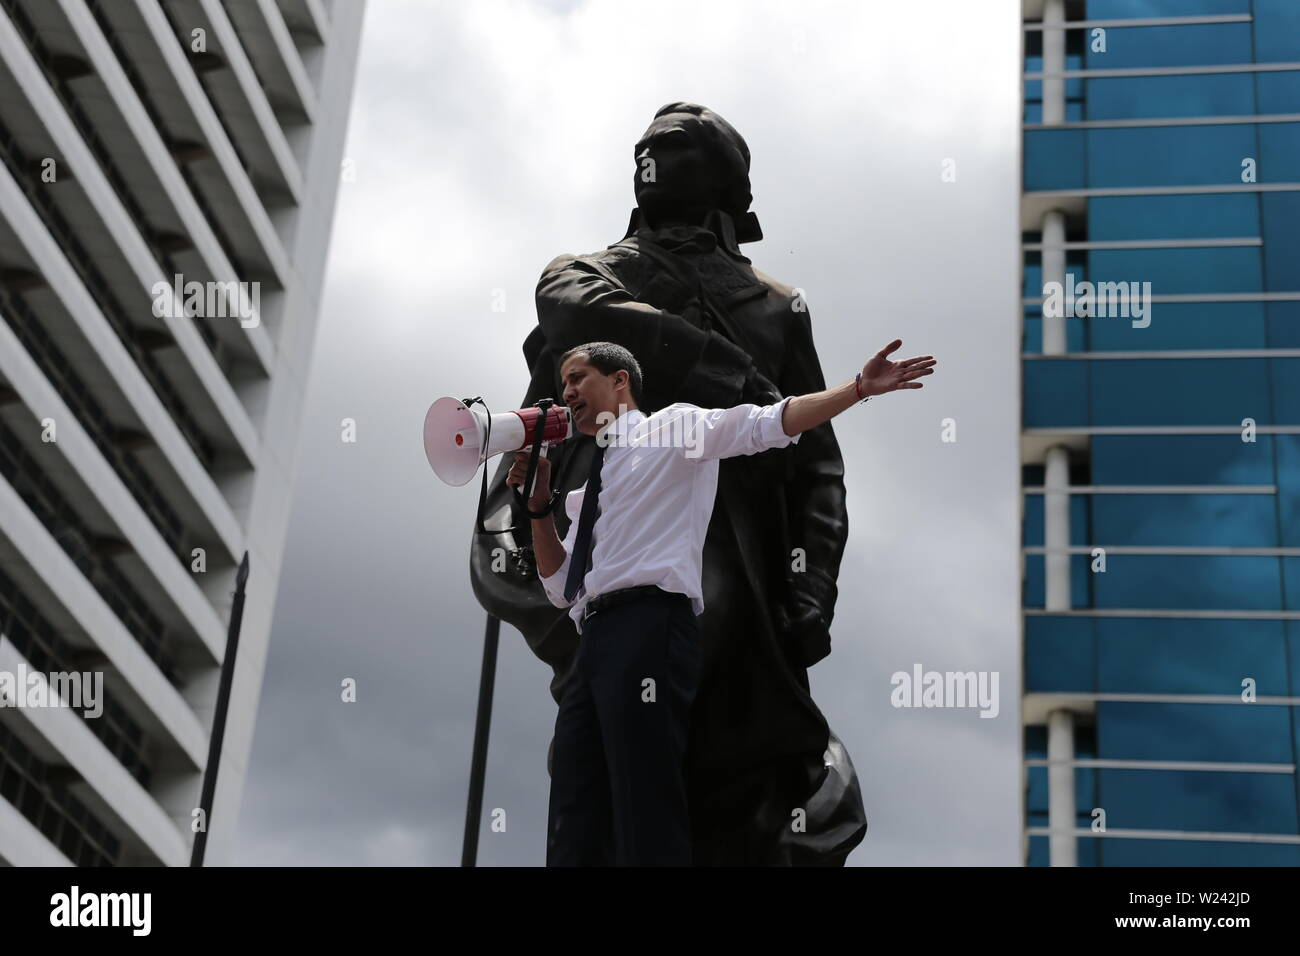 Caracas, Venezuela. 05th July, 2019. Juan Guaido, self-proclaimed interim president of Venezuela, speaks at a rally on Independence Day. Guaido has called on civil society to protest against the government of Head of State Maduro. Venezuela commemorates on July 5 the independence of Spain in 1811. Credit: Rafael Hernandez/dpa/Alamy Live News - Stock Image